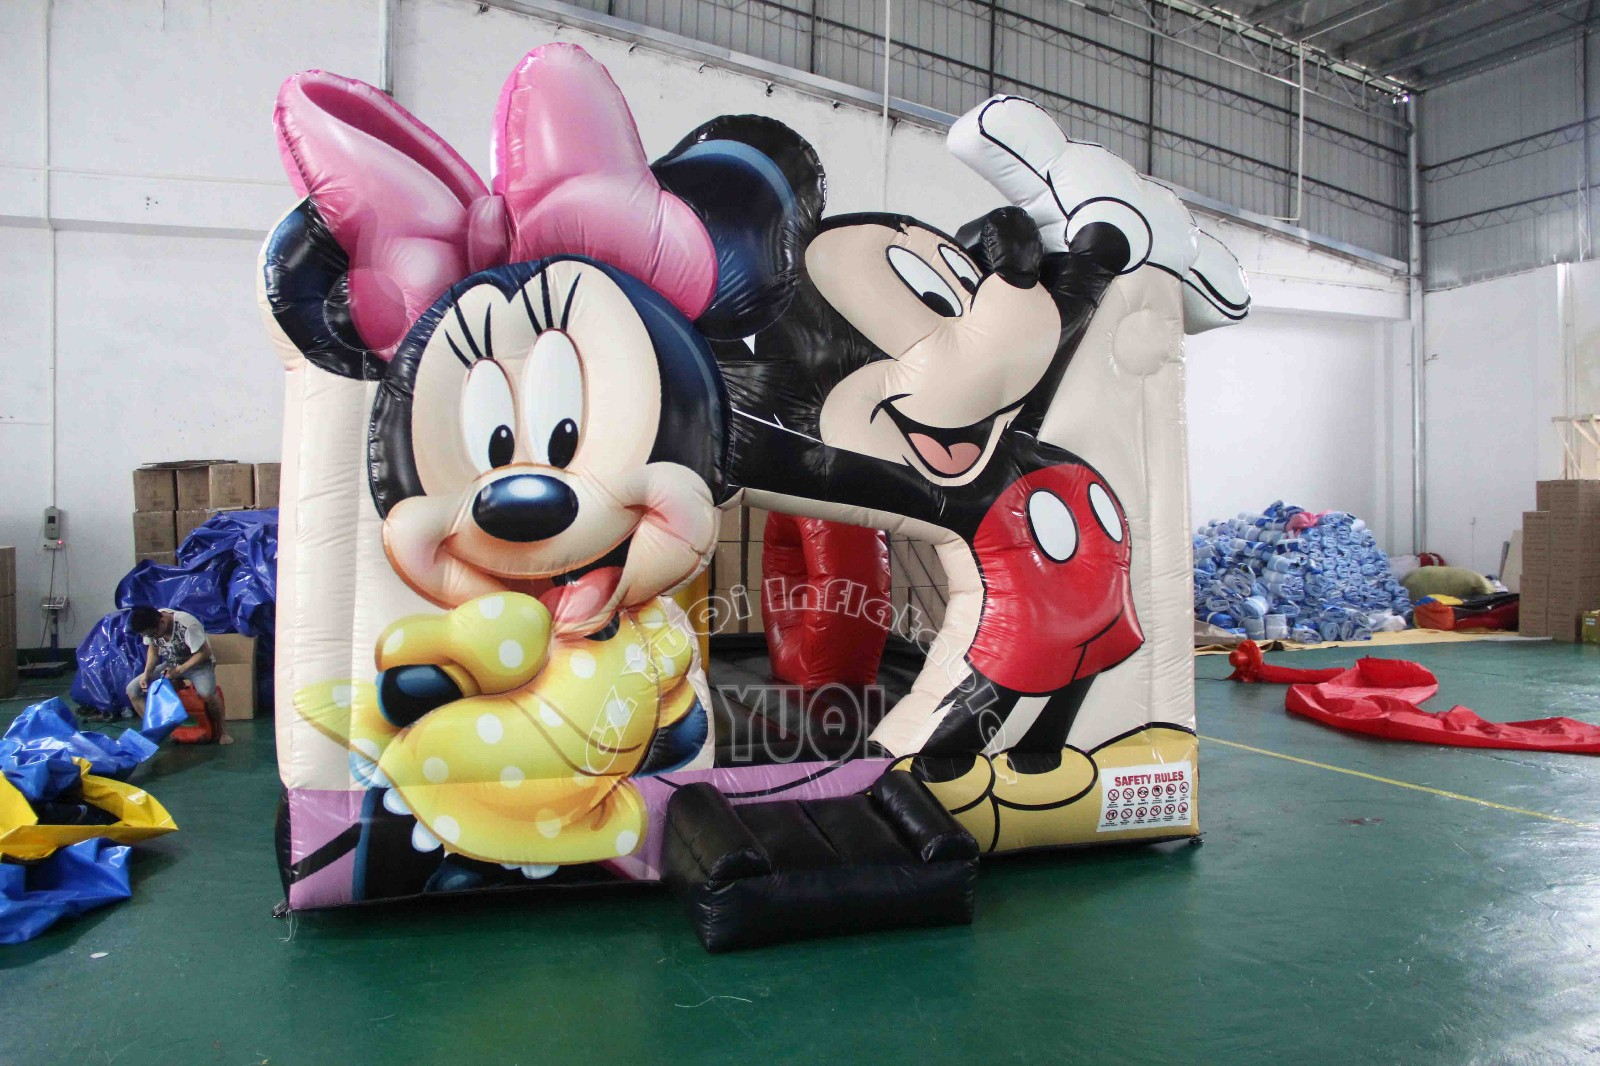 YUQI-Yq46 Lovely Mickey Mouse Inflatable Bounce House For Sale